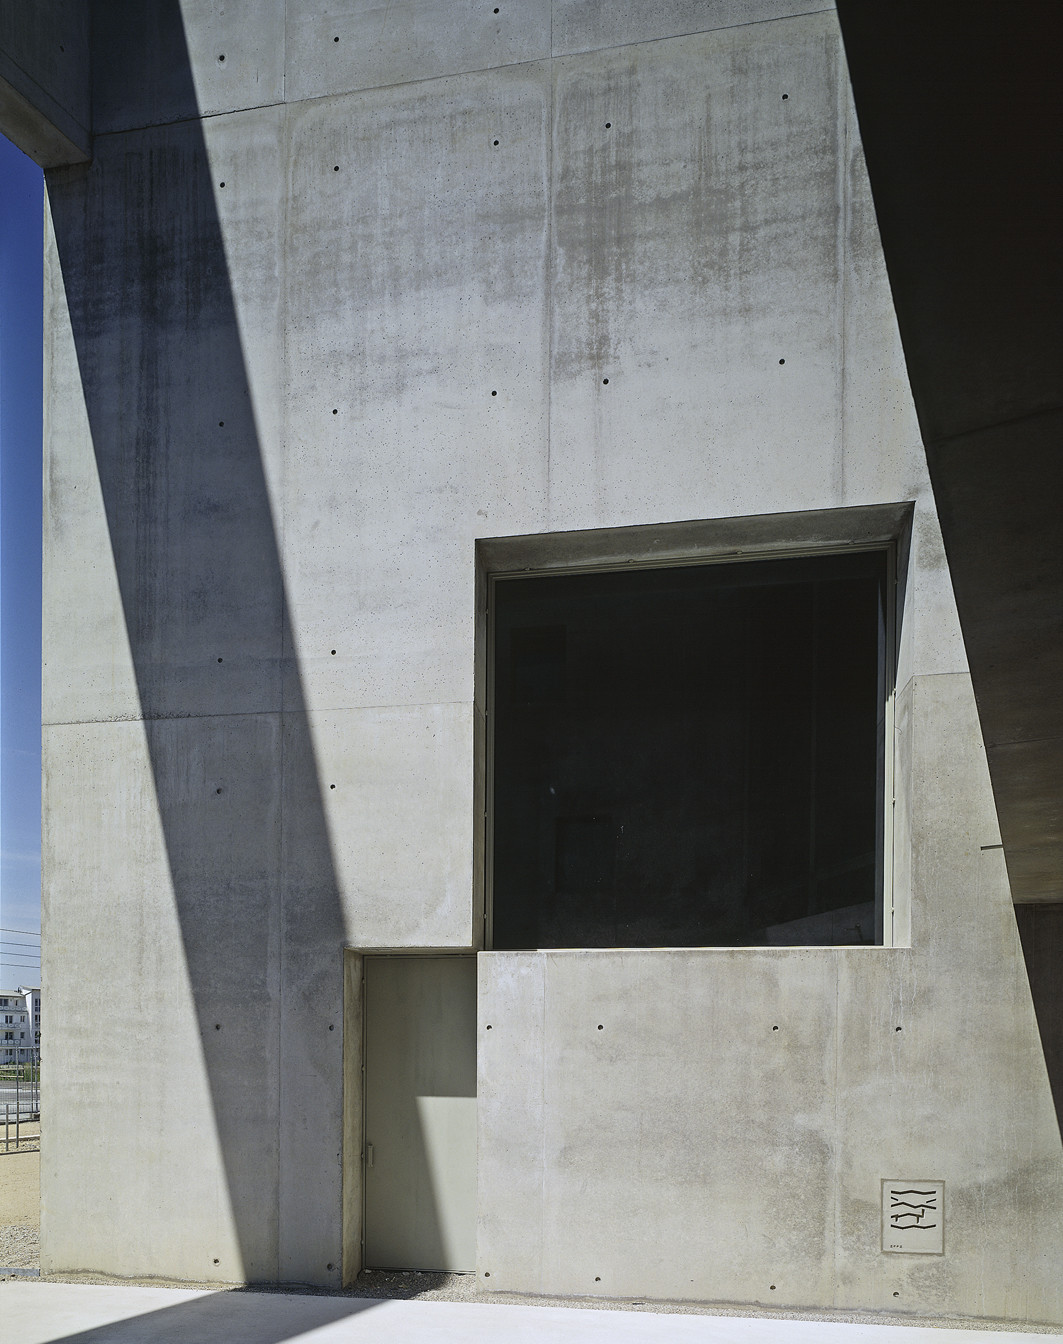 Double Church For Two Faiths / Kister Scheithauer Gross Architects And Urban Planners